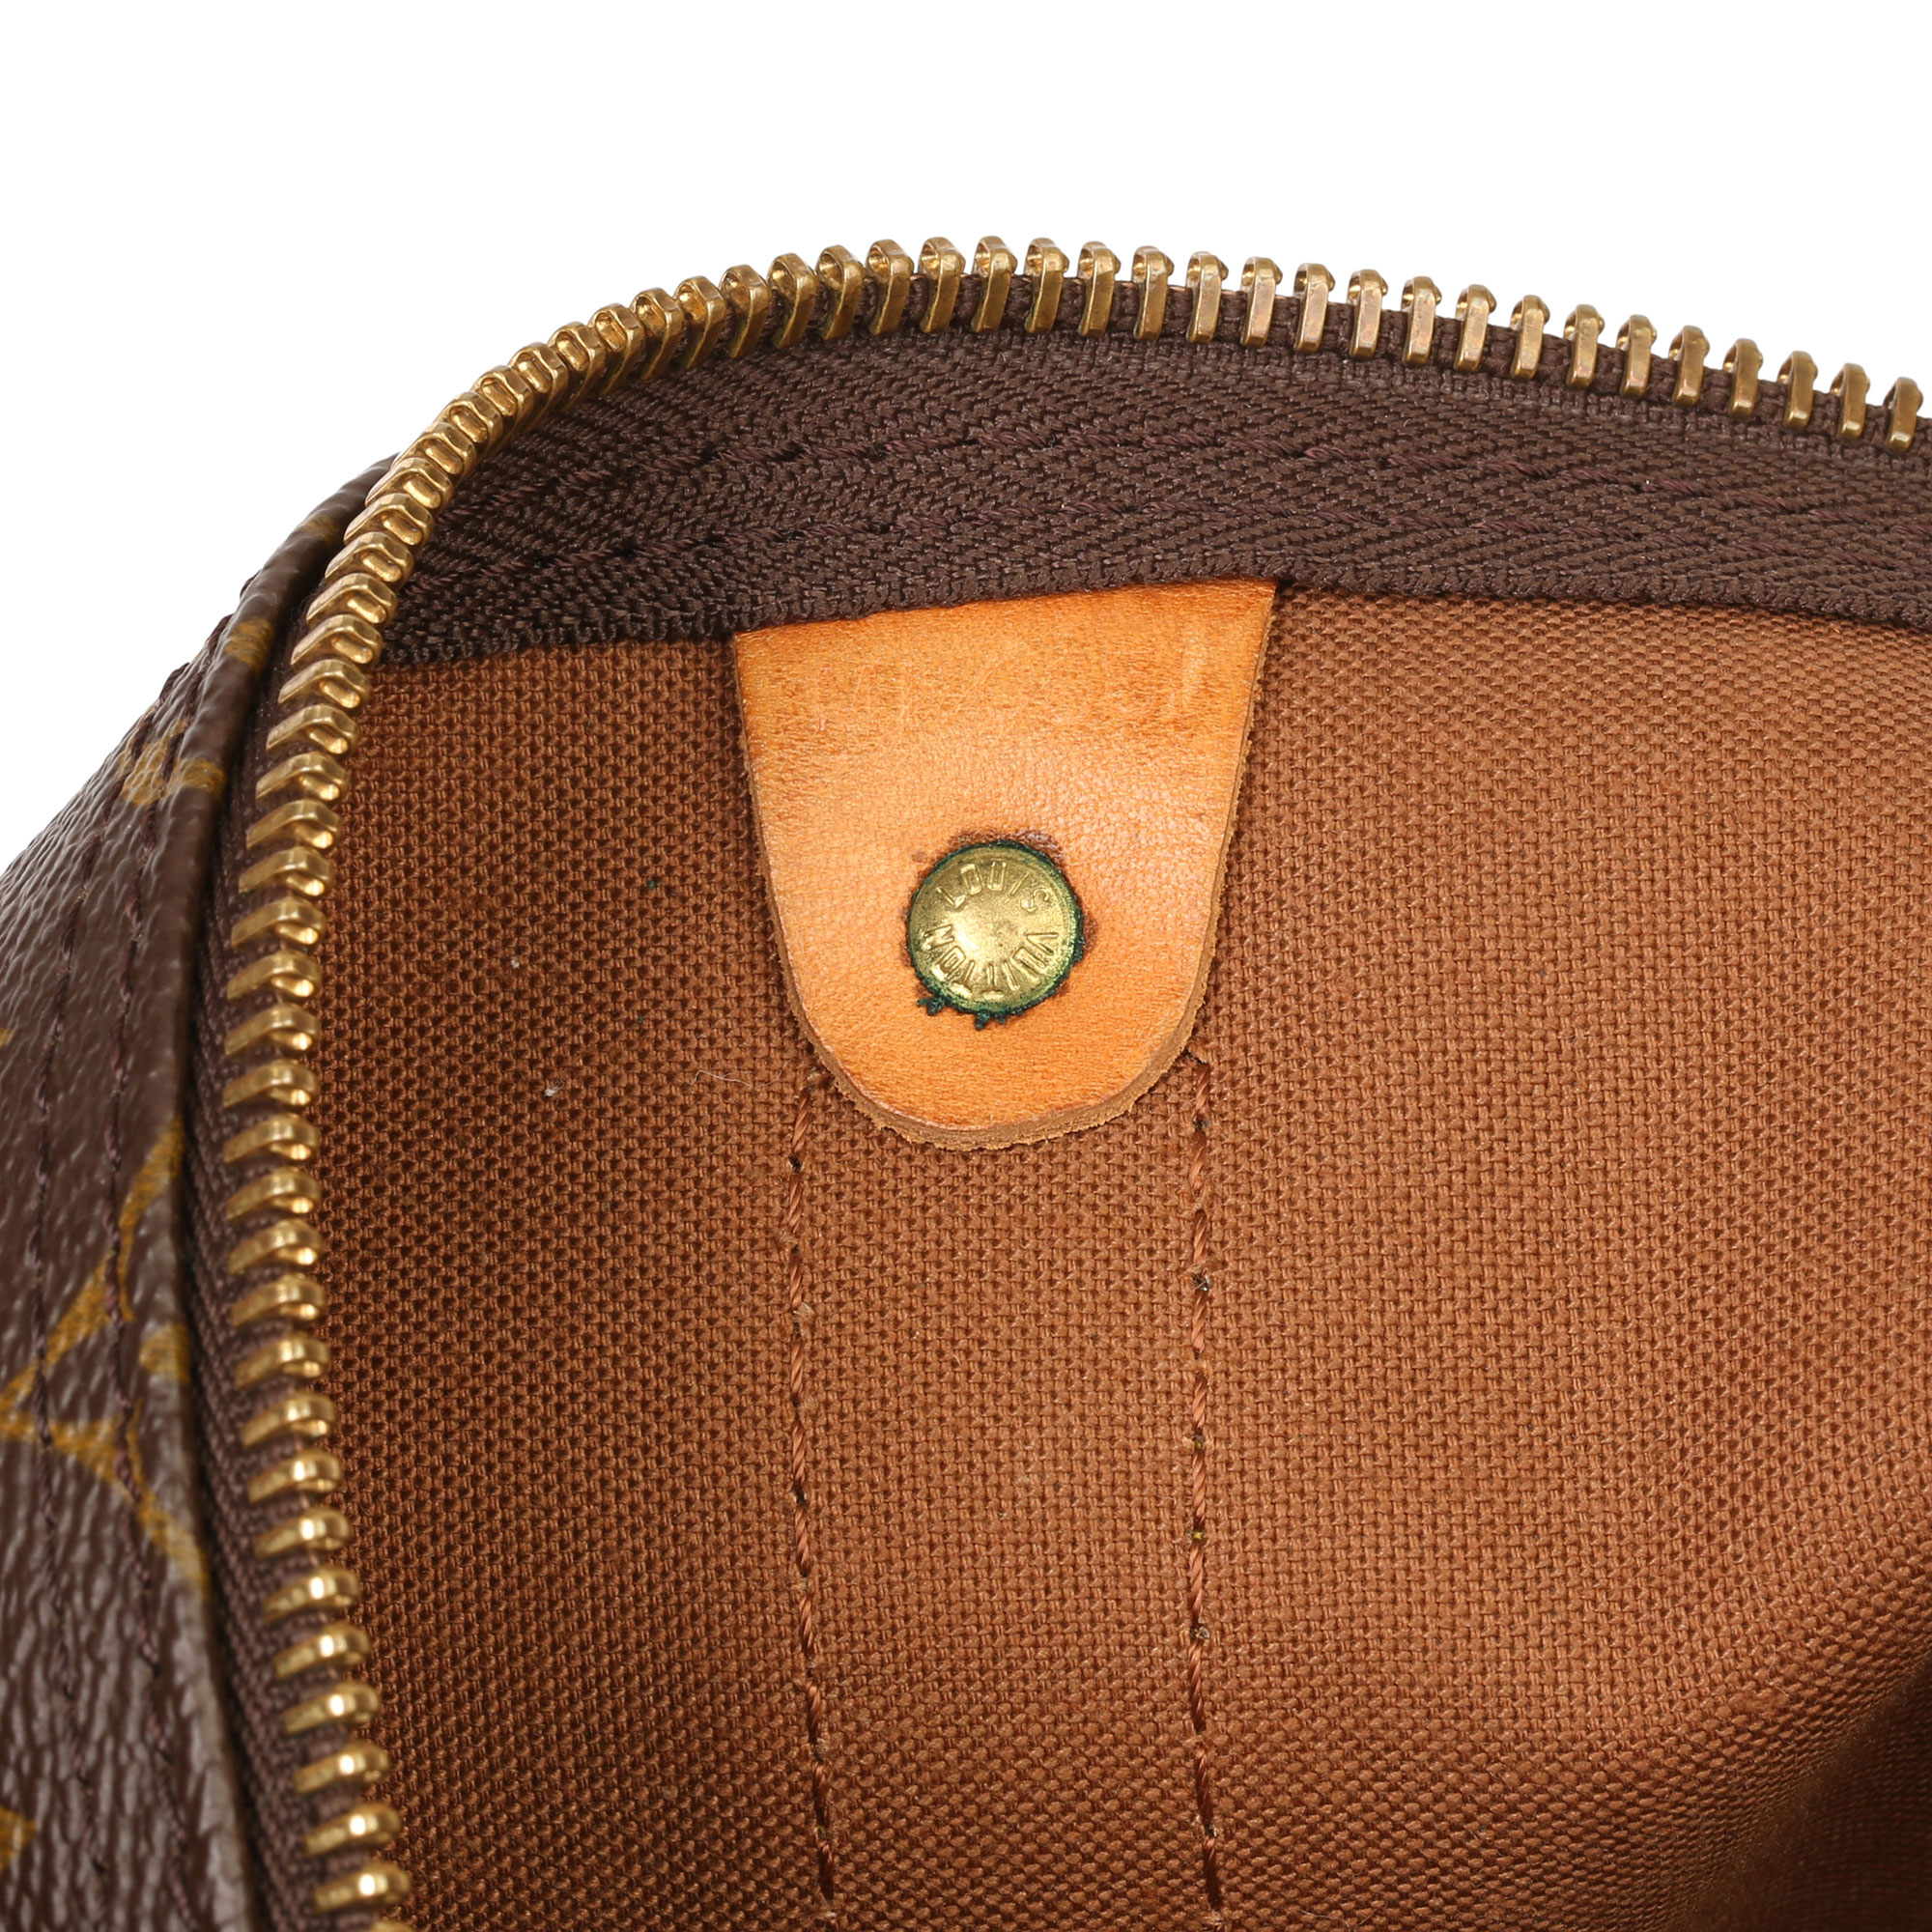 Louis Vuitton Brown Monogram Coated Canvas & Vachetta Leather Vintage Keepall 55 - Image 7 of 14